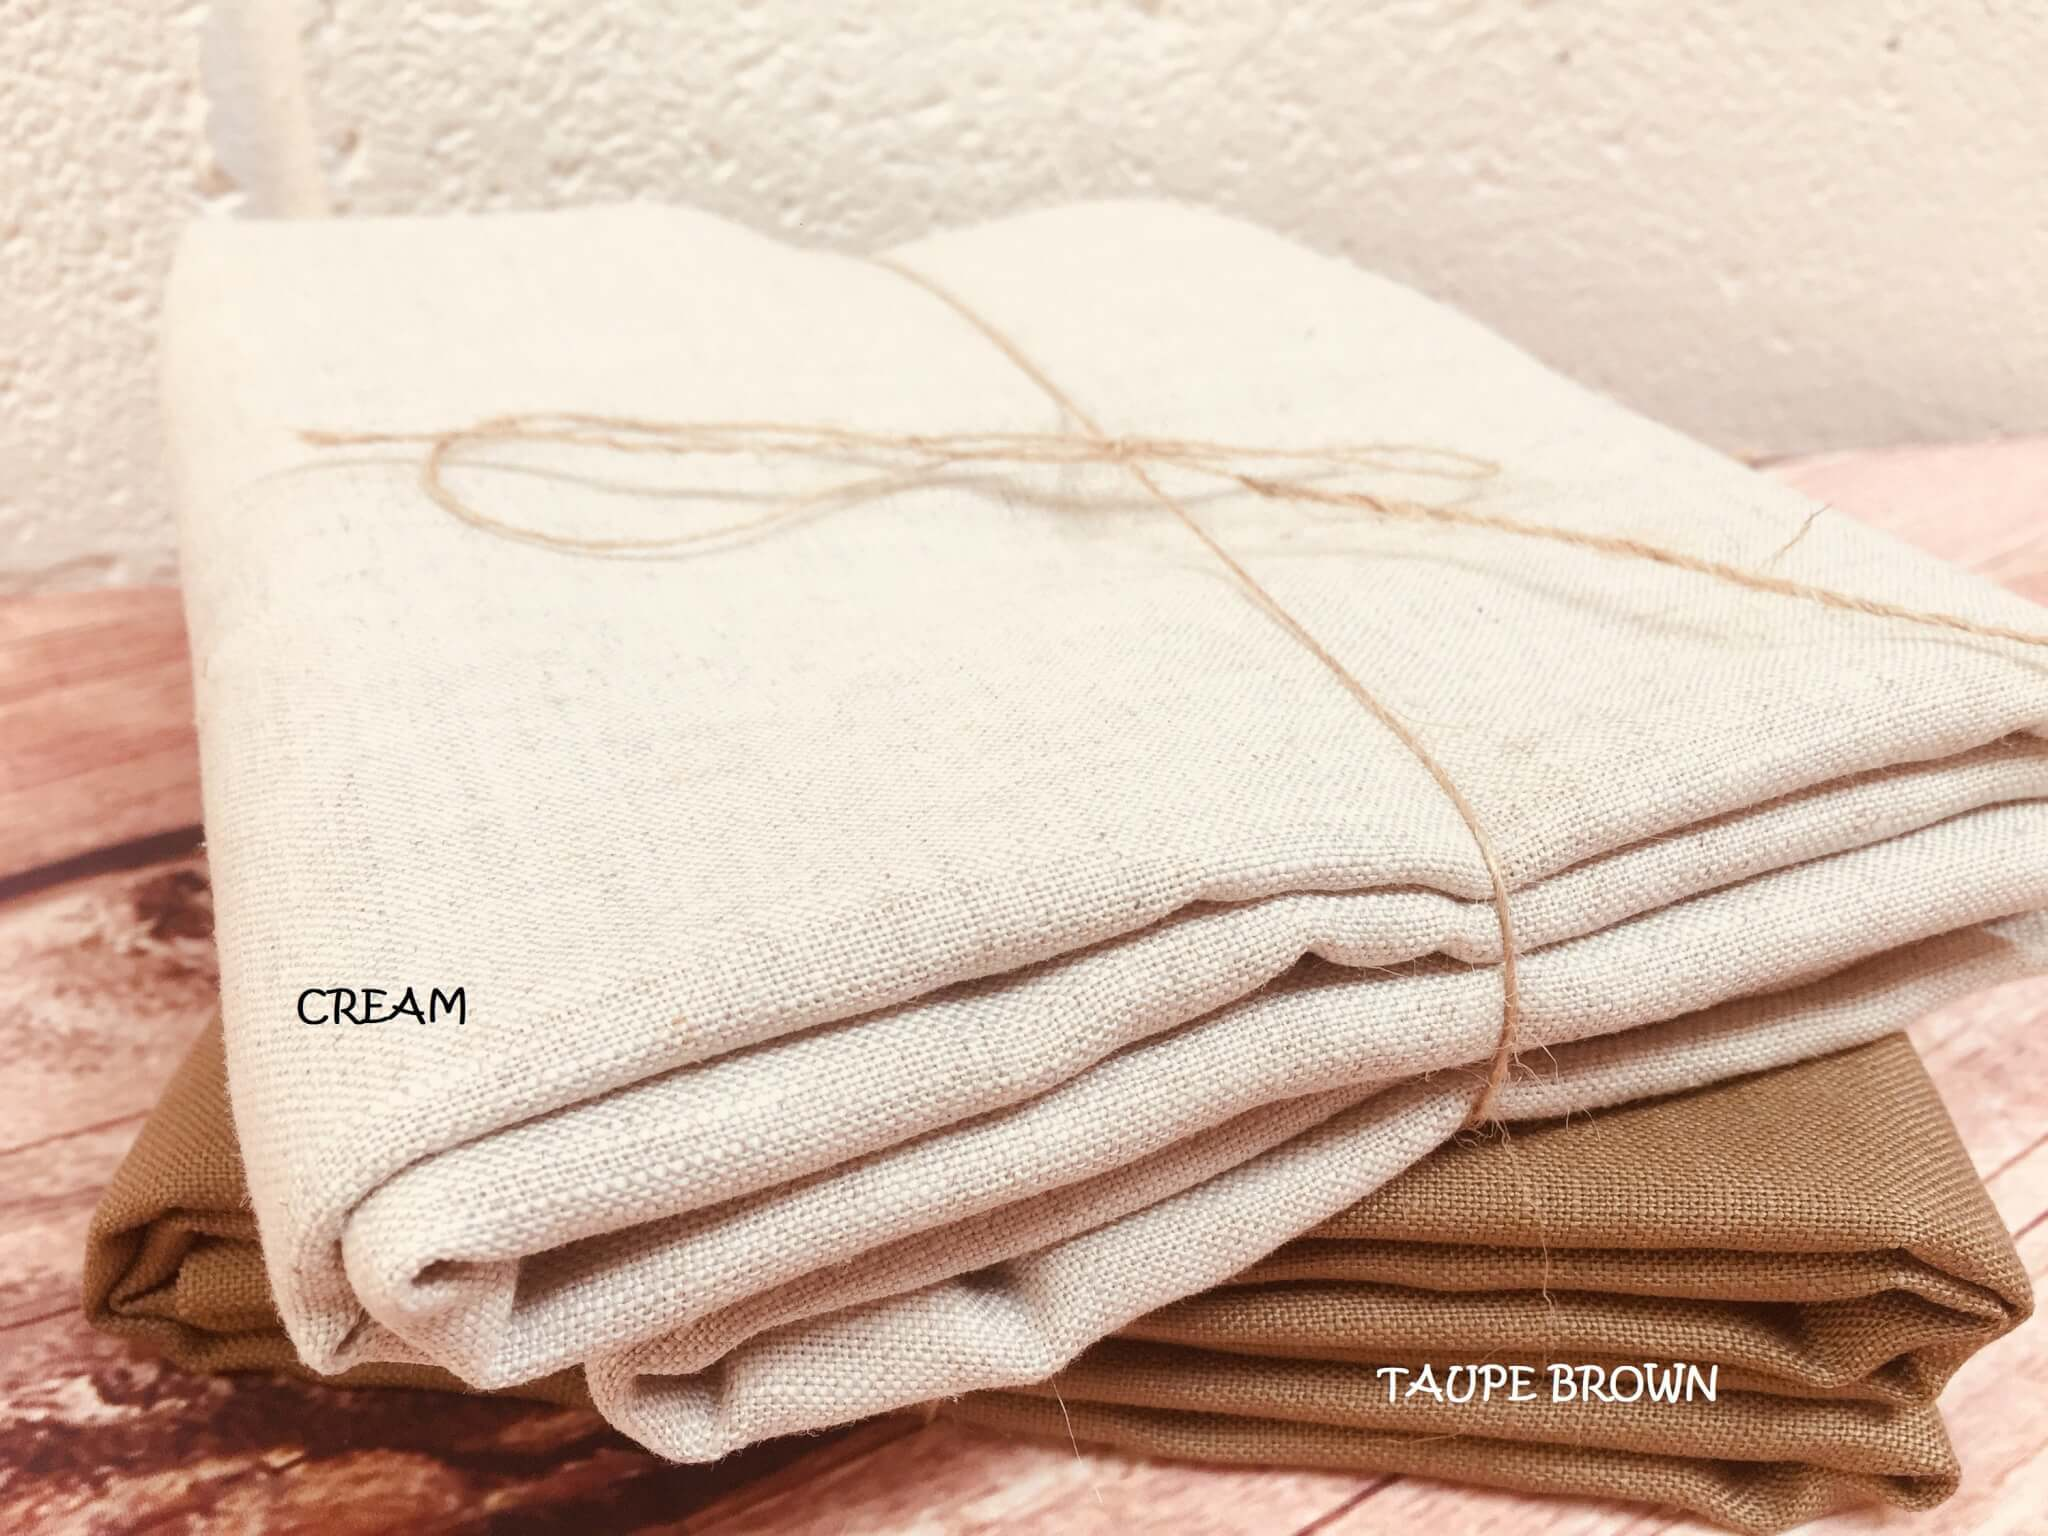 soft-linen-fabric-material-100-linens-textile-for-home-decor-curtains-clothes-140cm-wide-plain-cream-5d73ece11.jpg